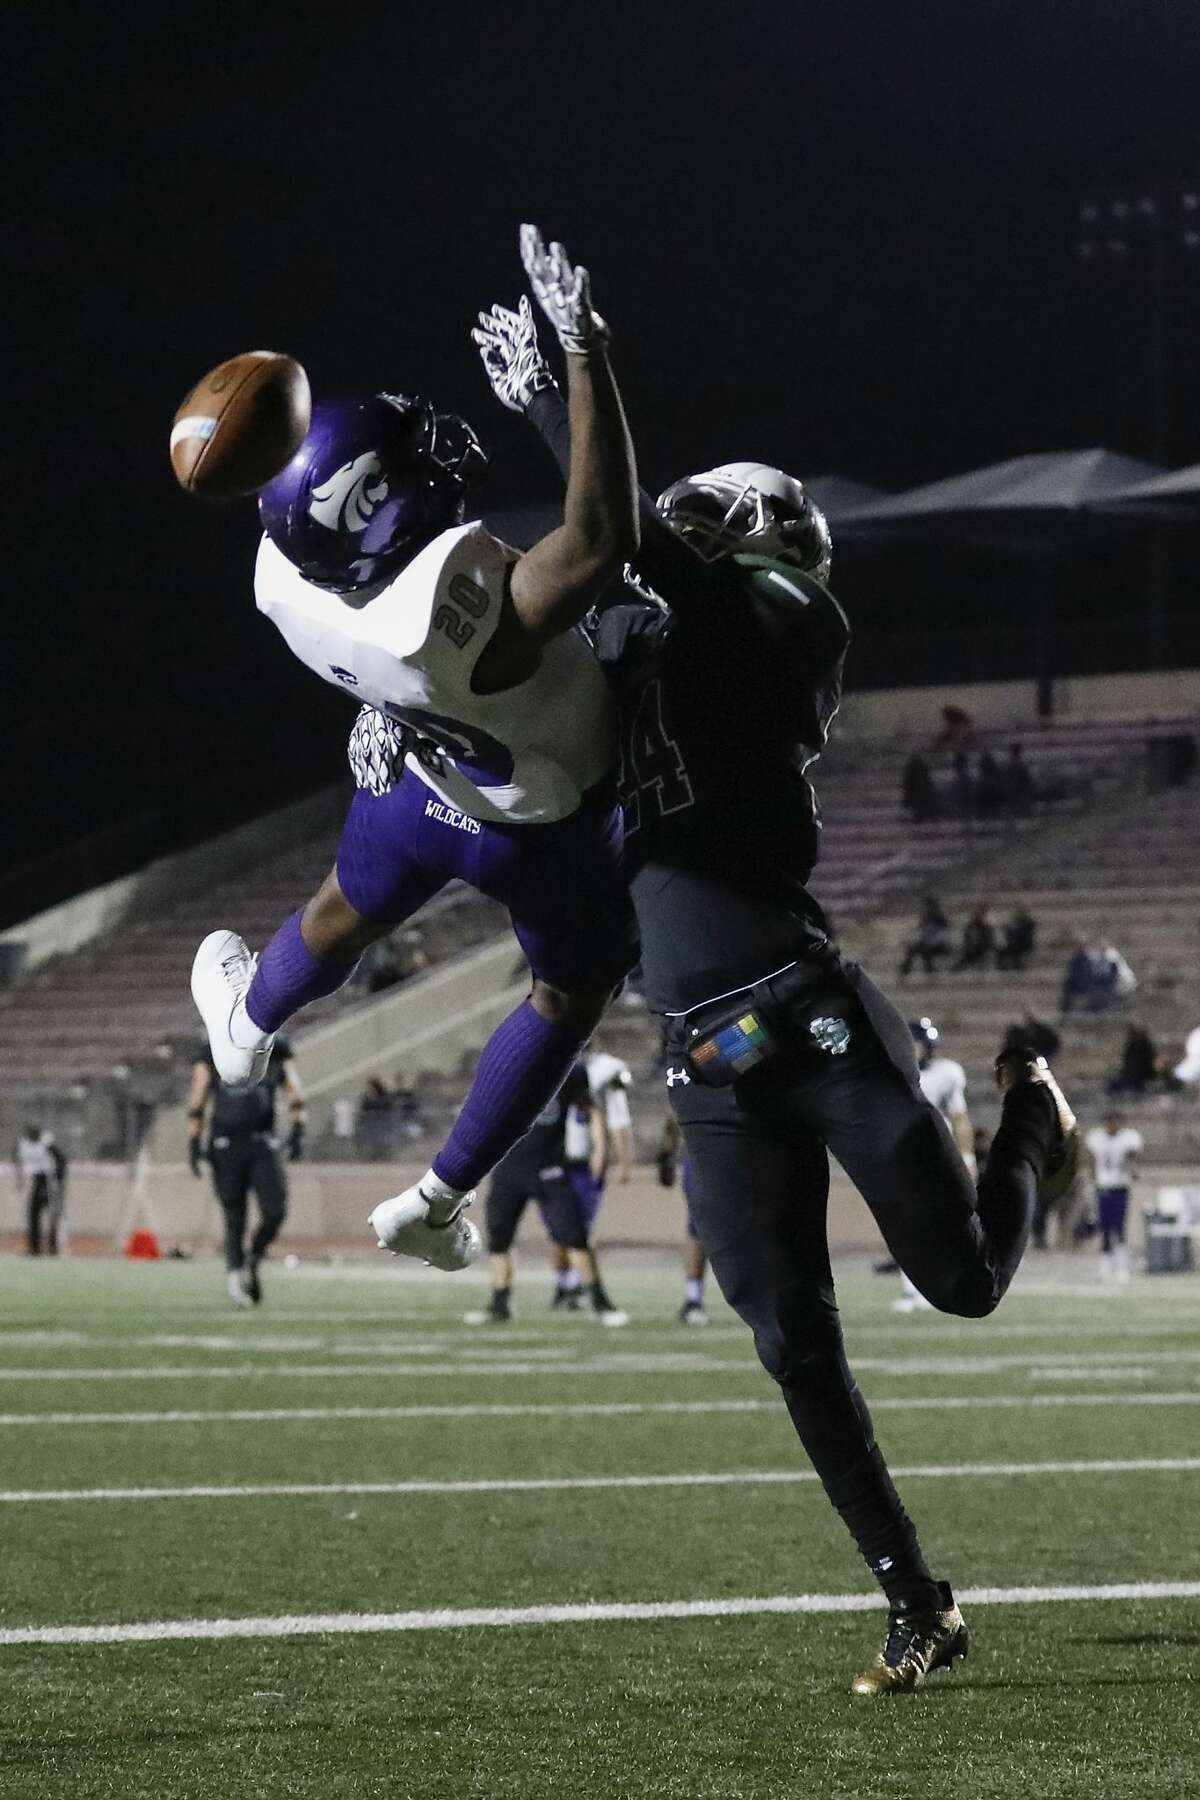 Kingwood Park Panthers cornerback Isaiah Lewis (24) breaks up a pass intended for Humble Wildcats Trodale Richardson (20) in the end zone during the high school football game between the Humble Wildcats and the Kingwood Park Panthers in Humble, TX on Friday, November 10, 2017.